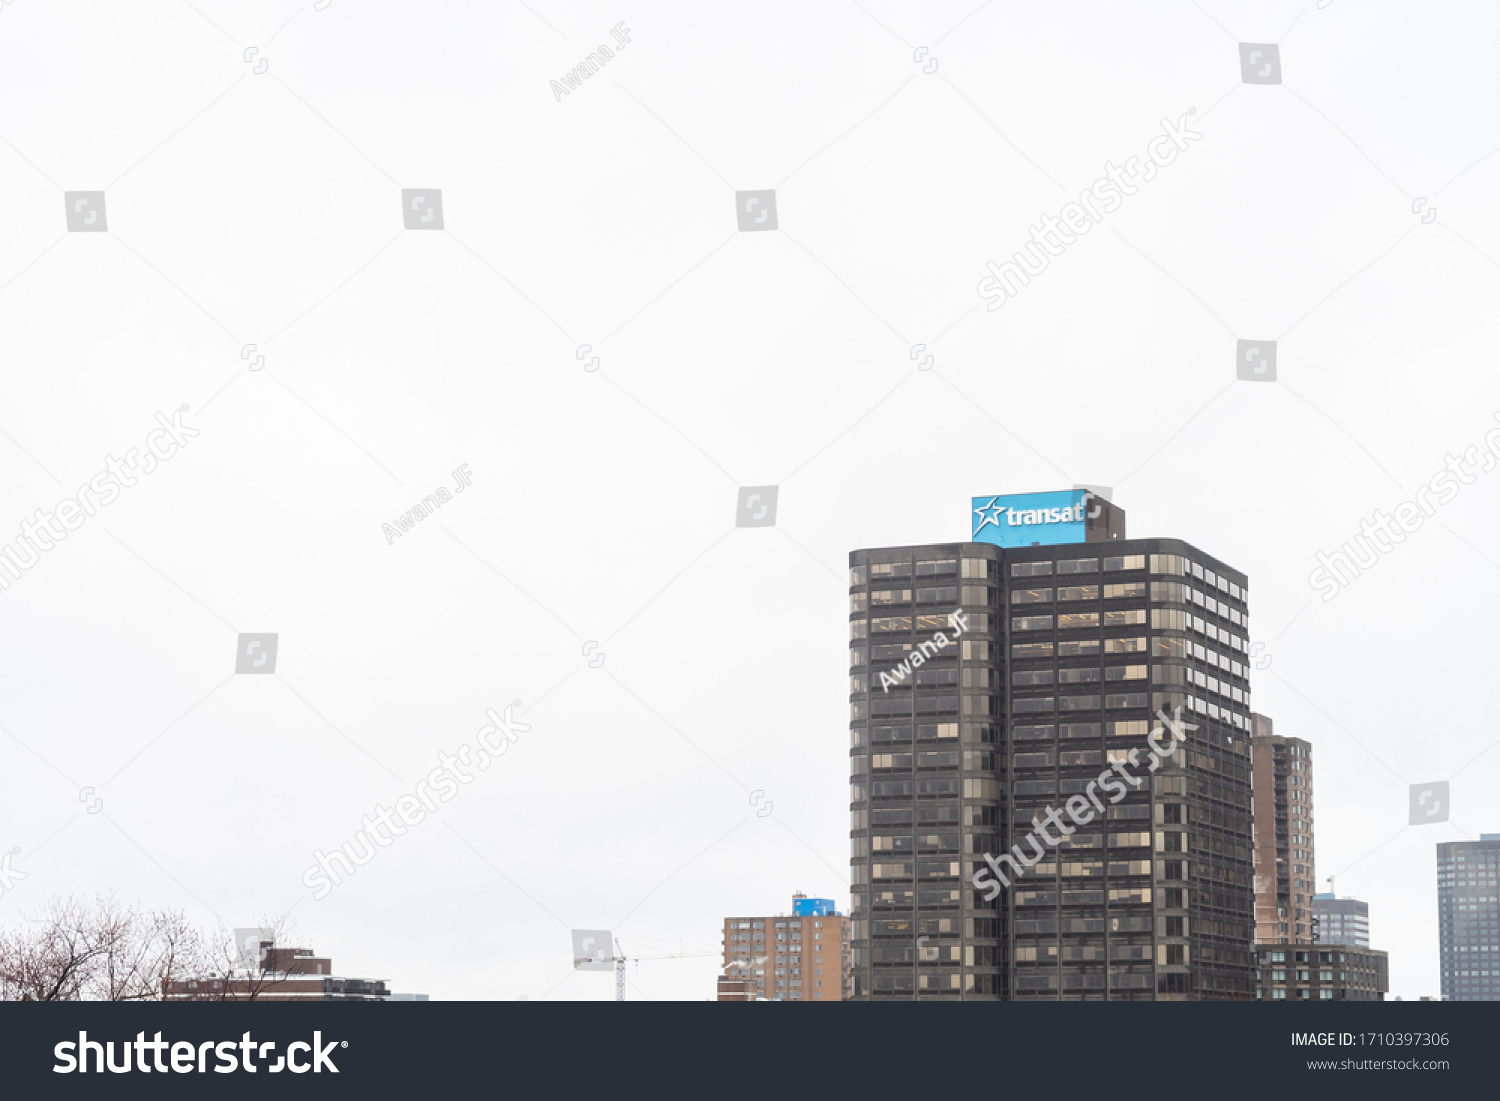 stock-photo-montreal-canada-april-air-tr